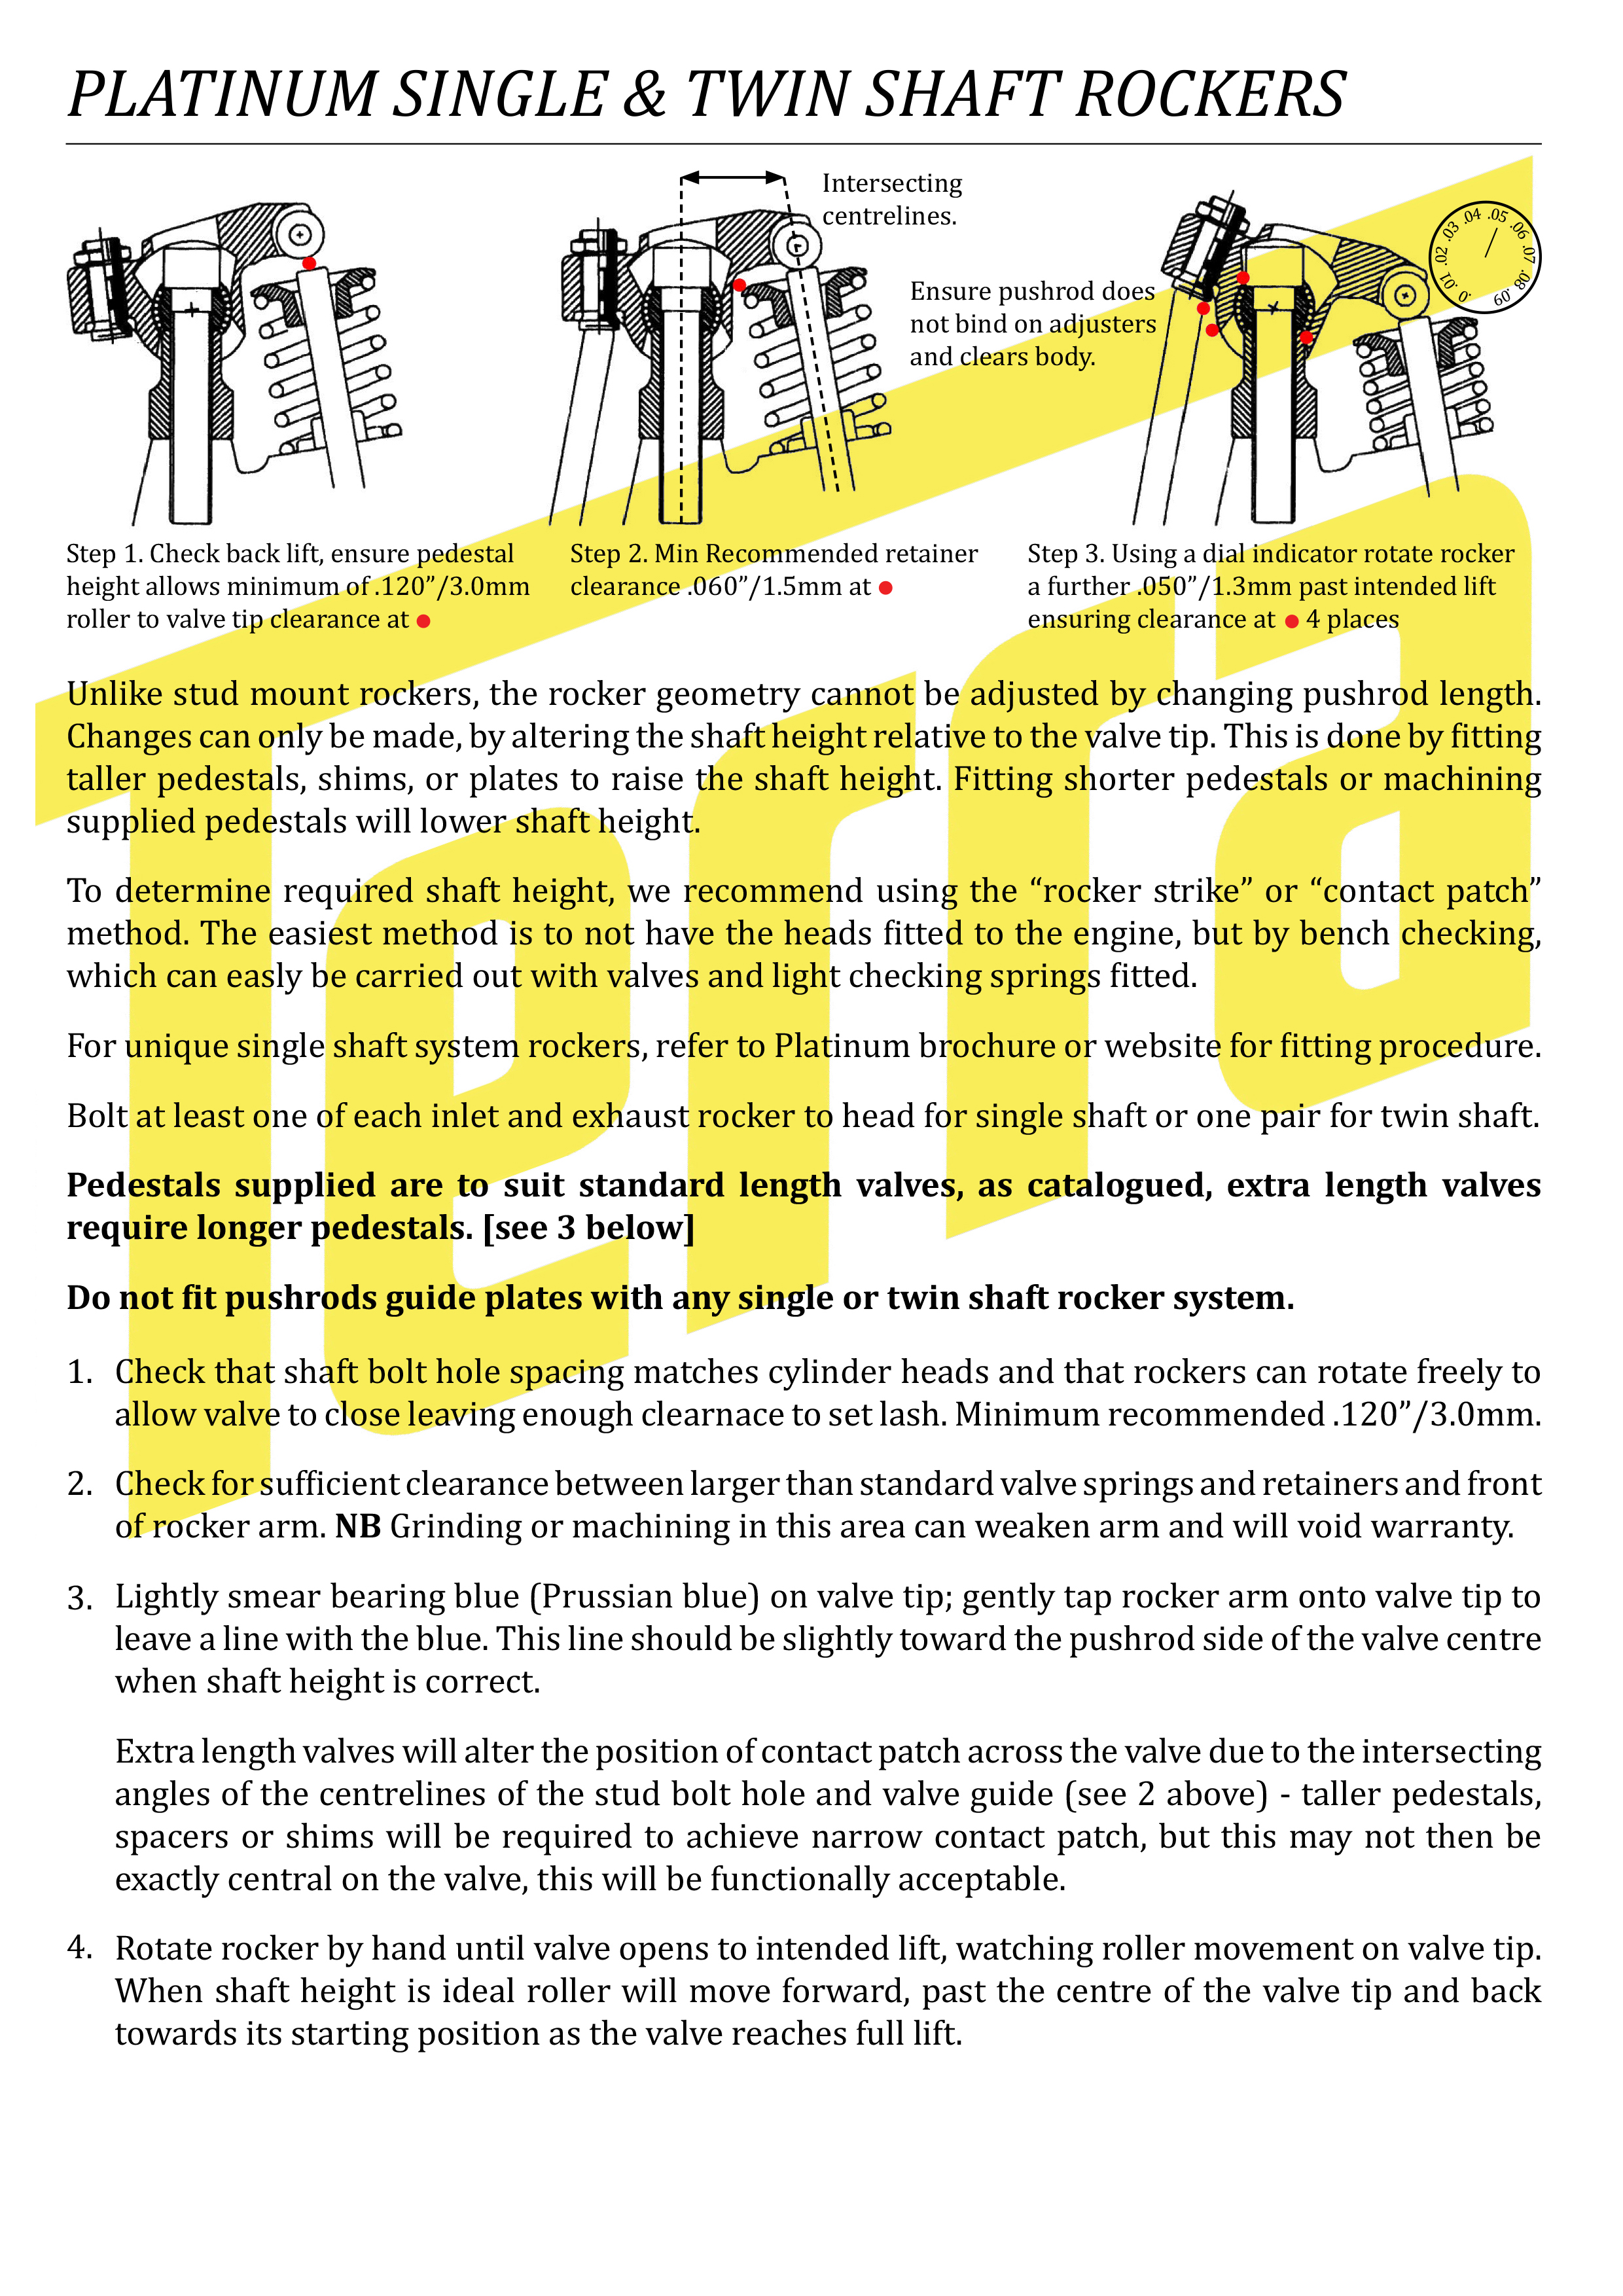 generic-instructions-ver1.18-page-3.jpg